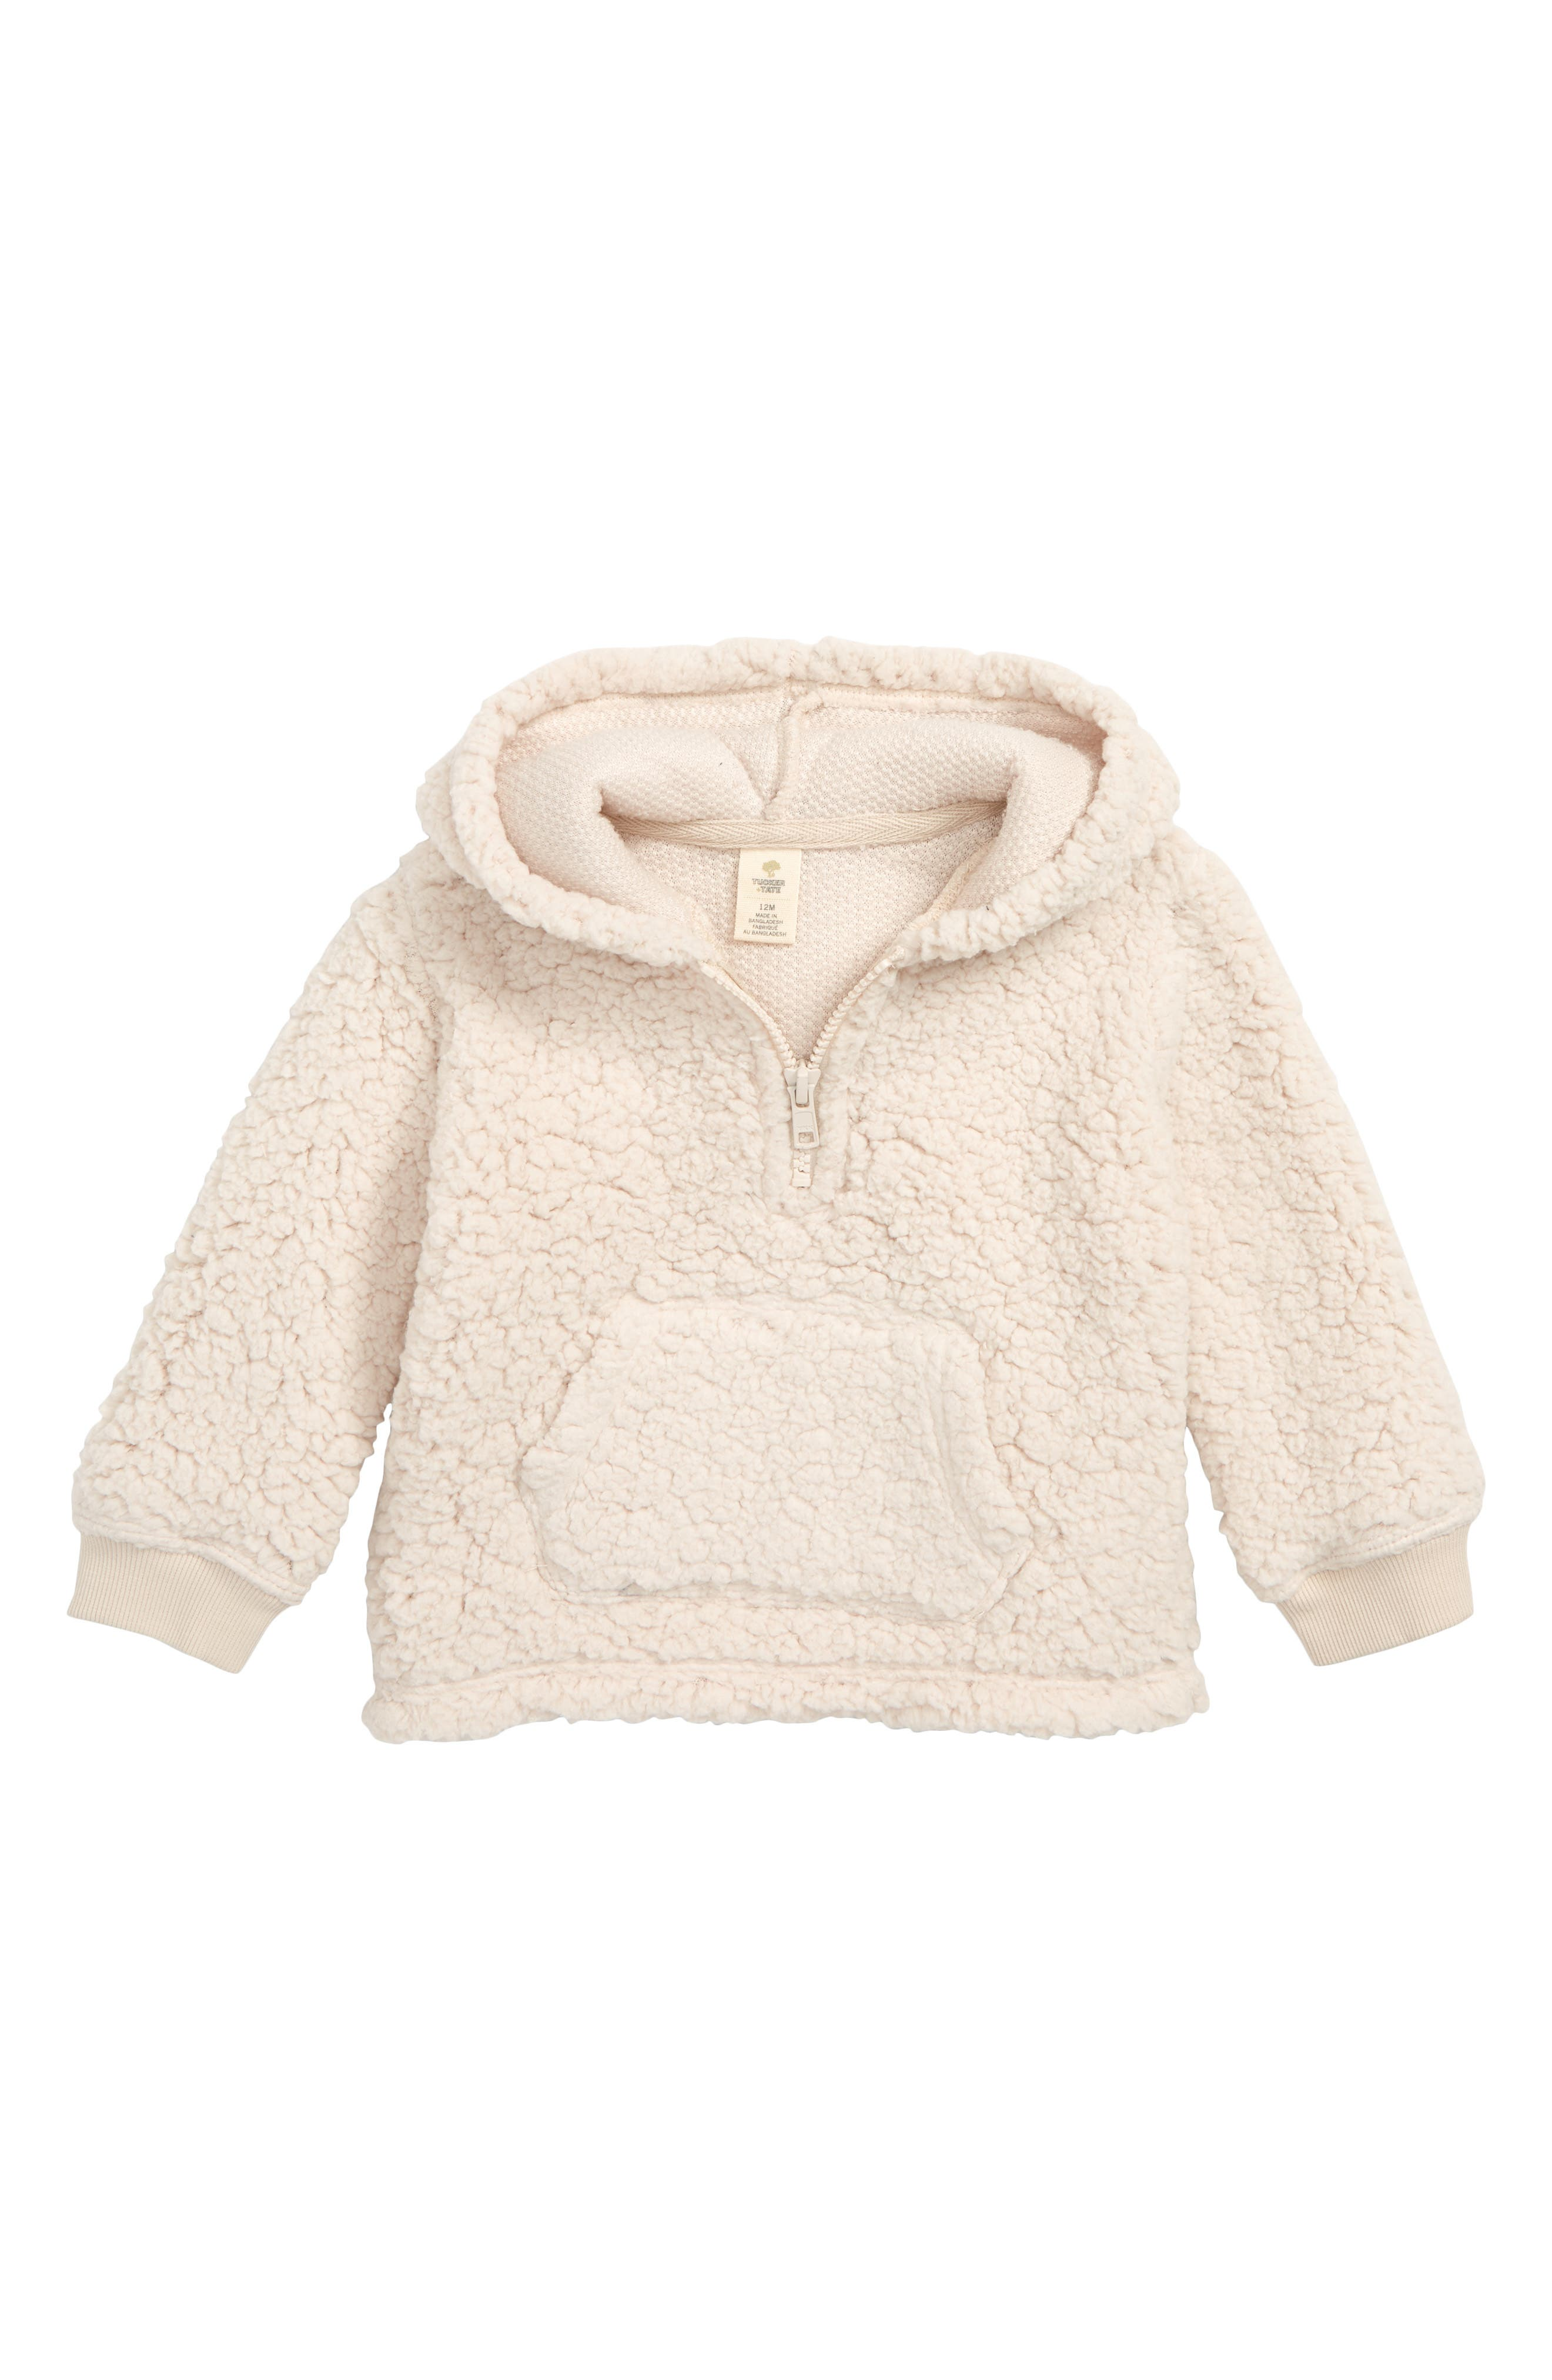 TUCKER + TATE,                             Faux Fur Pullover Hoodie,                             Main thumbnail 1, color,                             IVORY EGRET